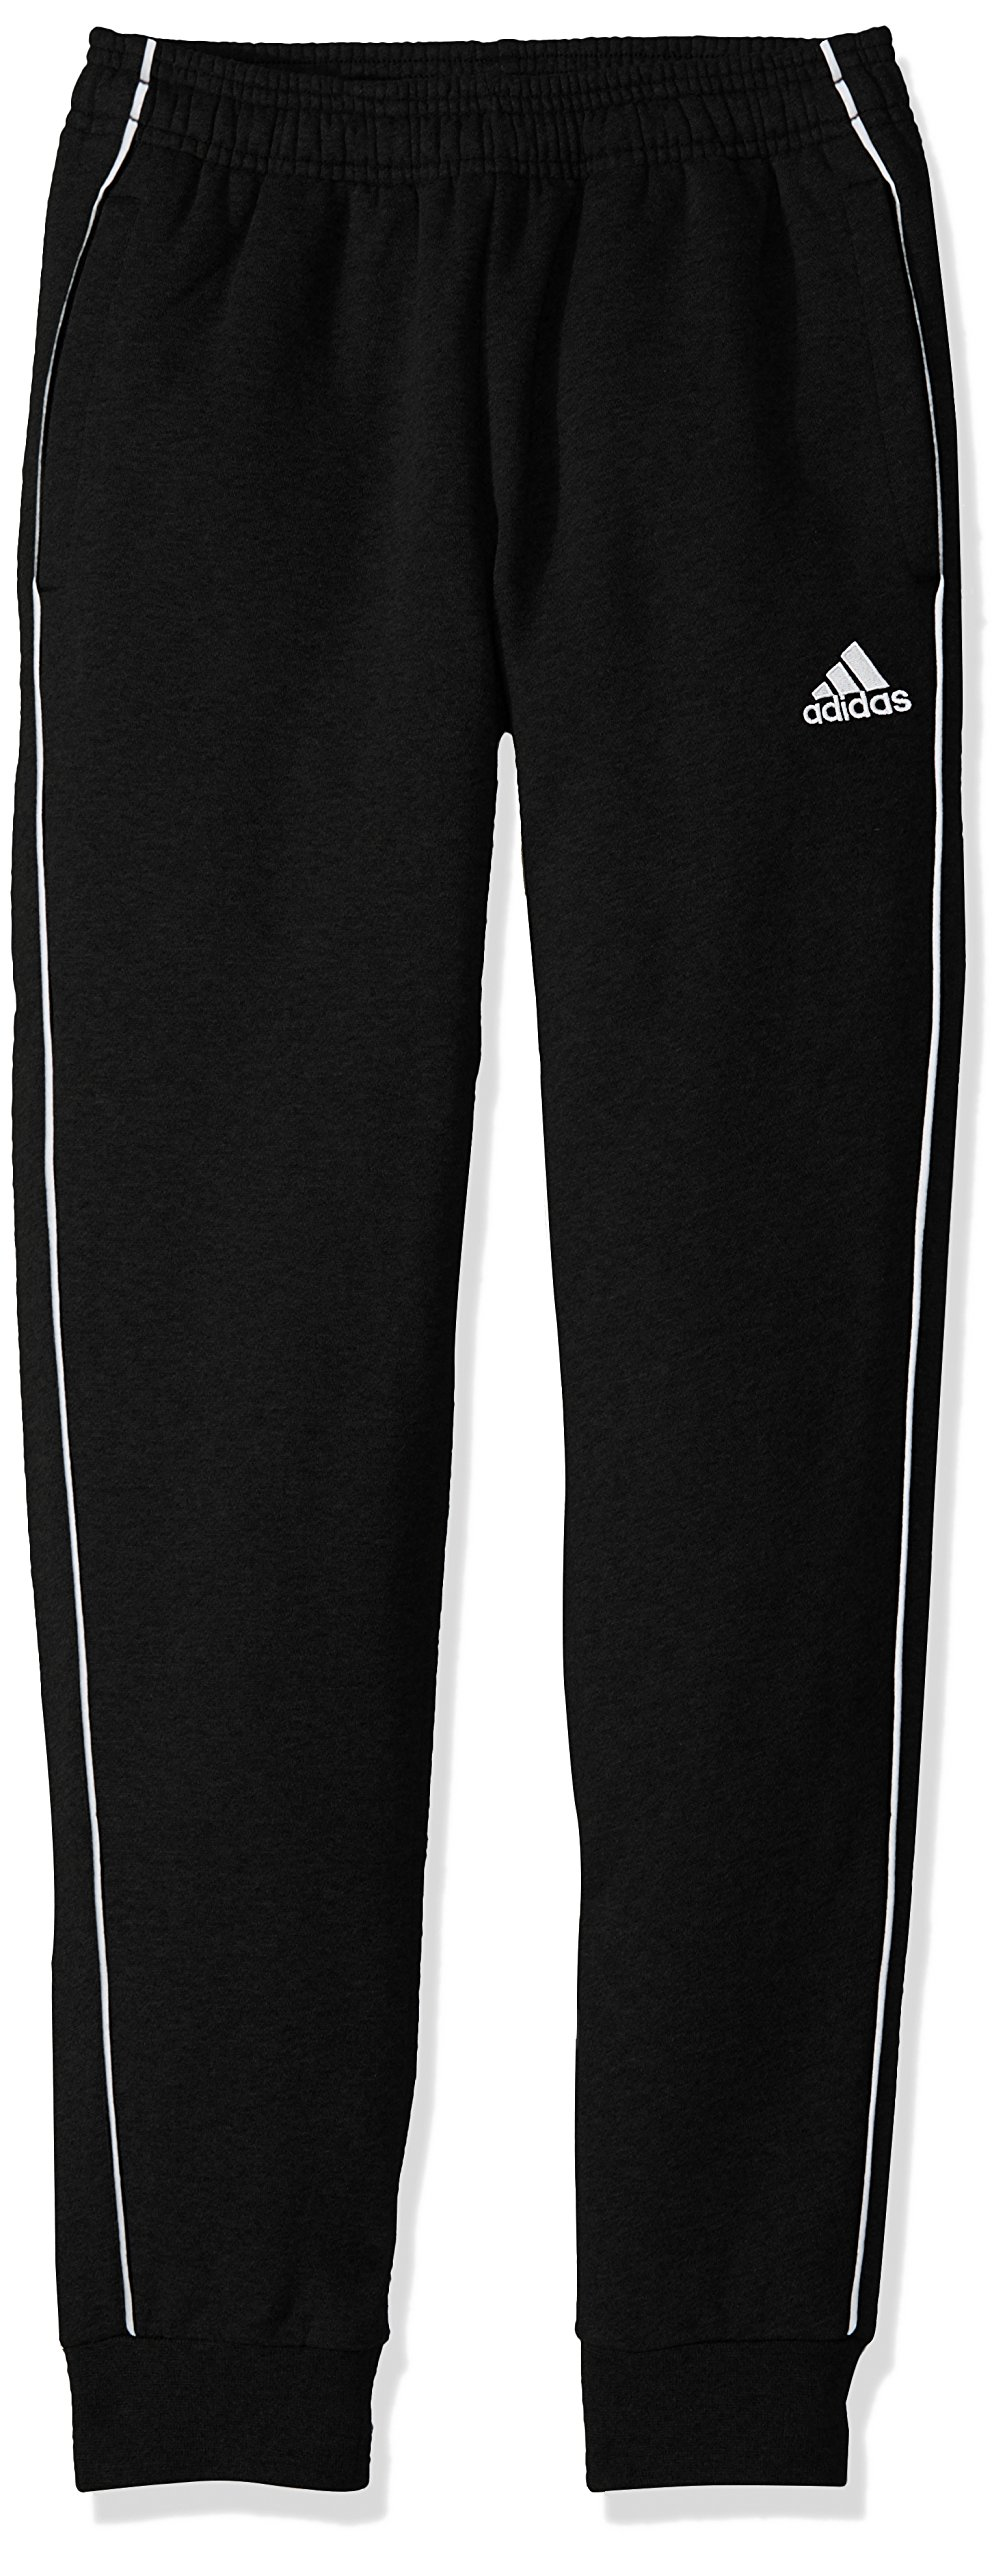 adidas Core 18 Sweat Pants, Black/White, 2XS by adidas